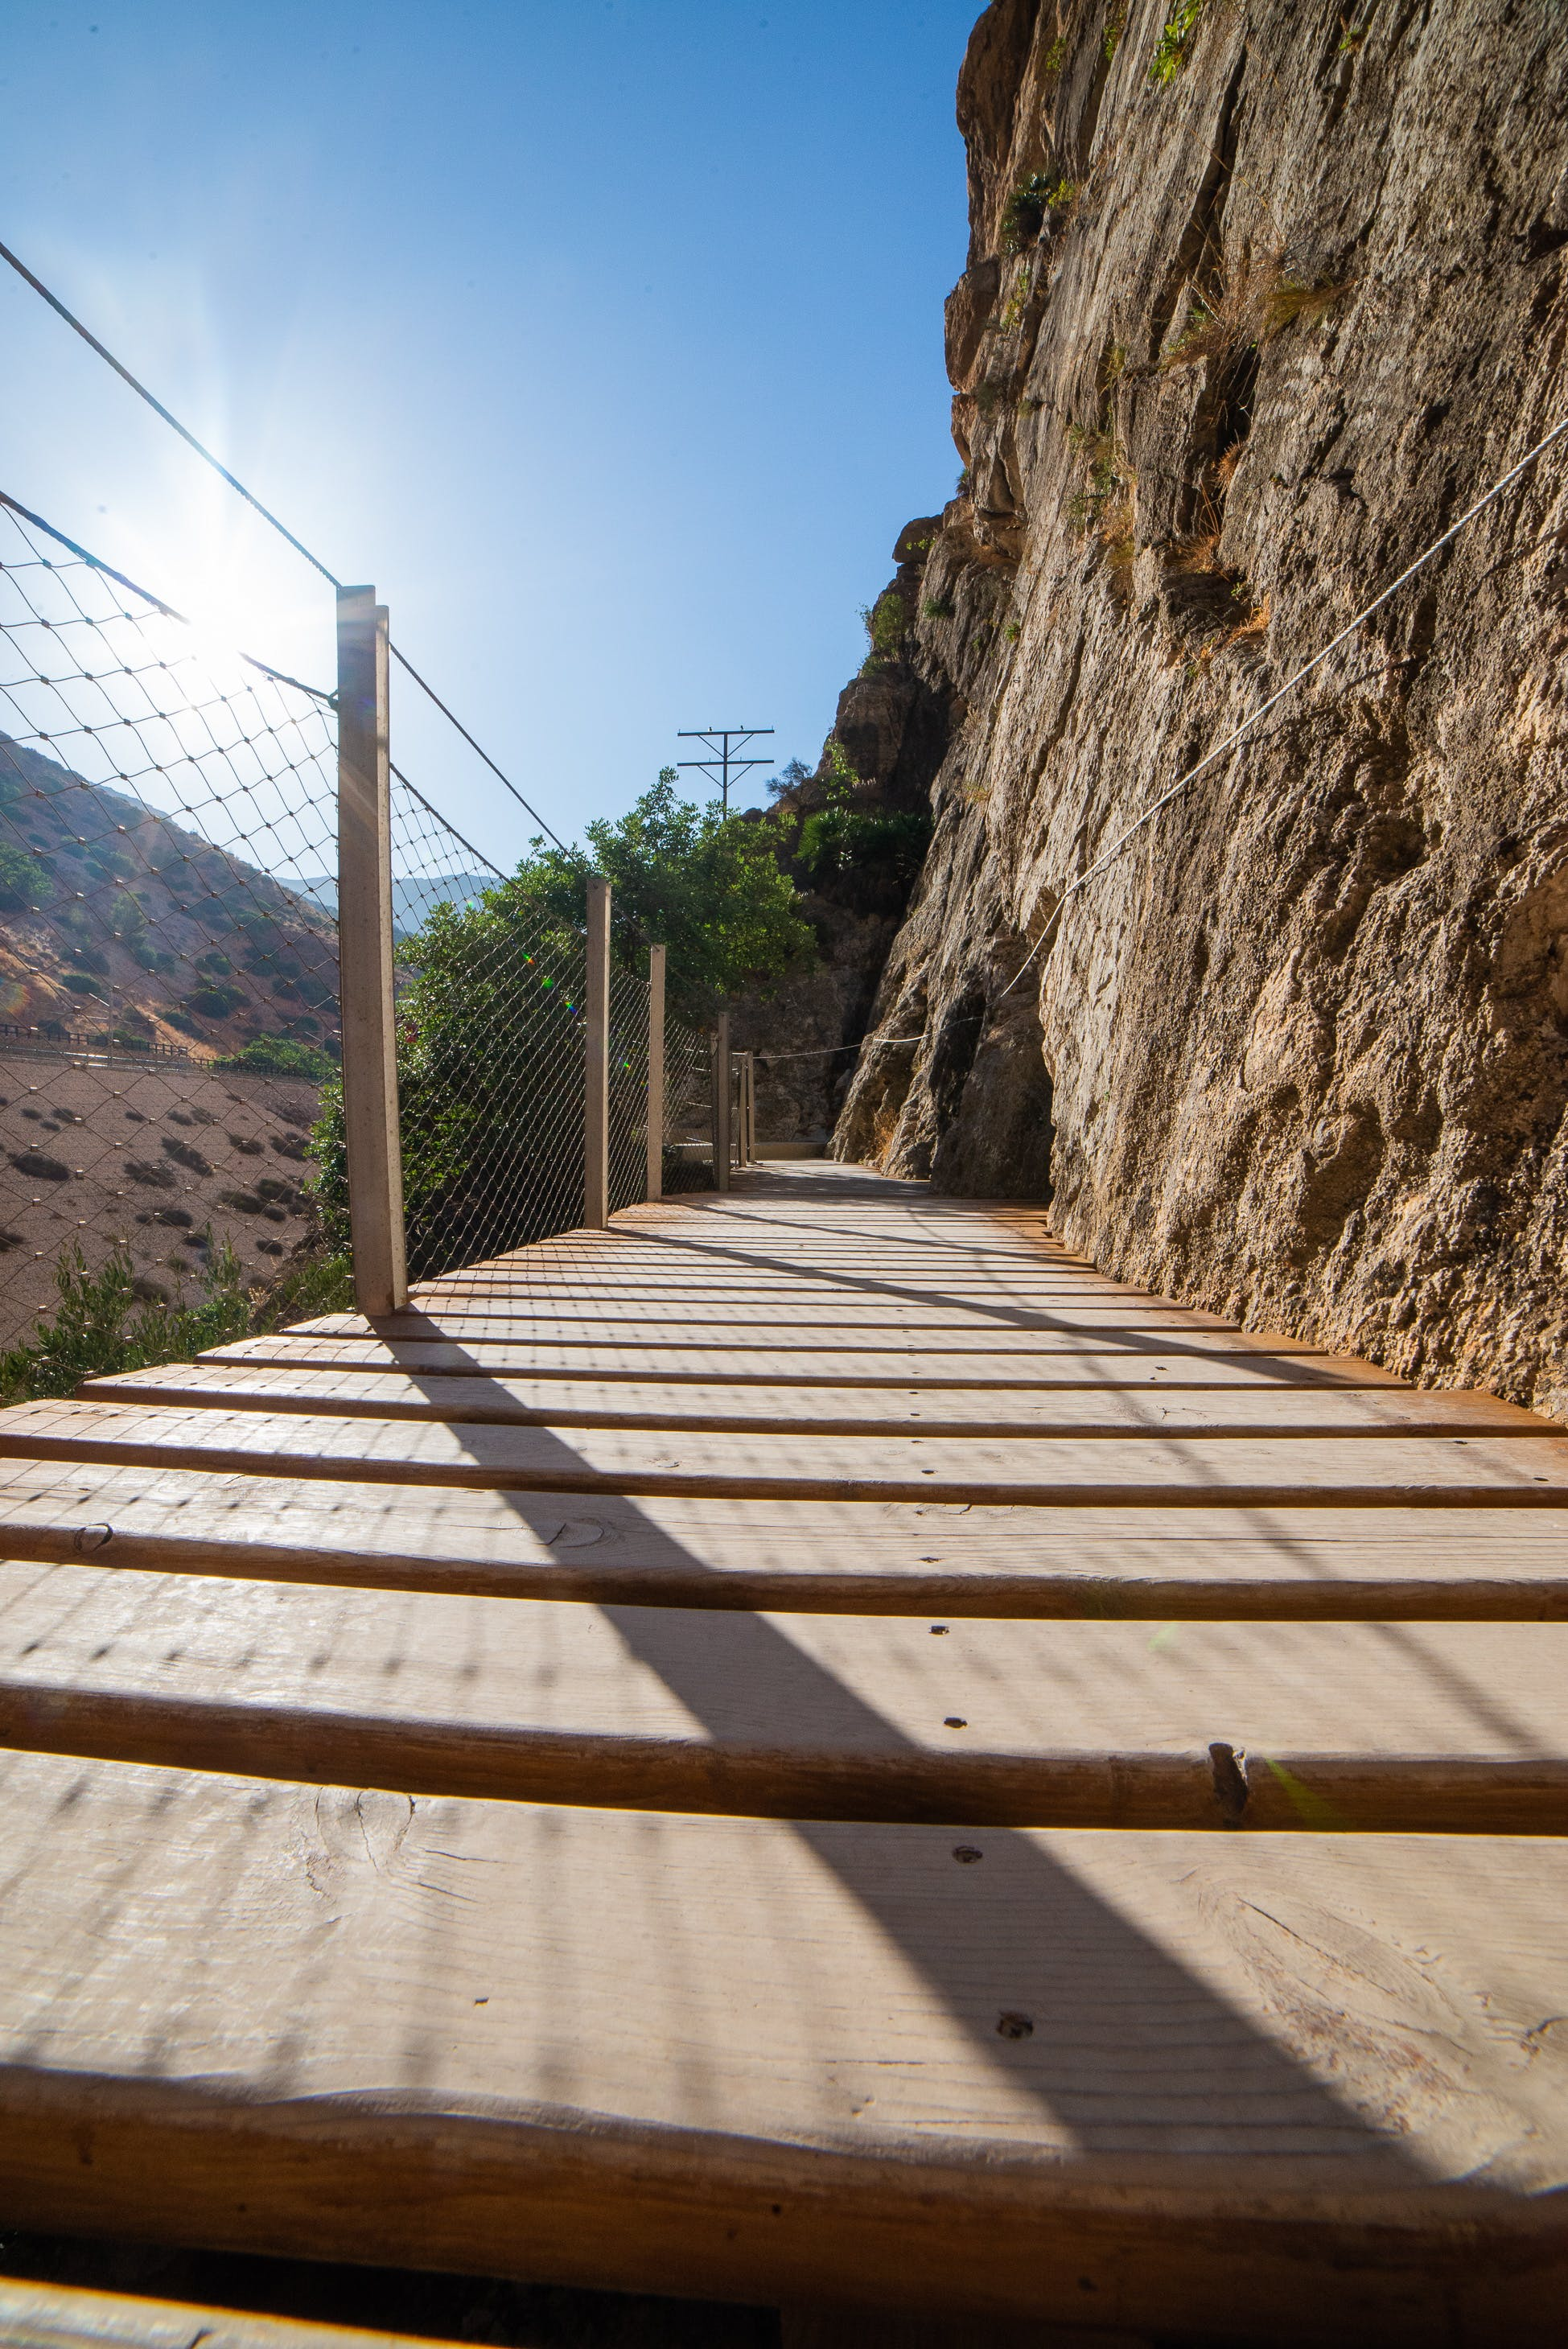 Free stock photo of barriers, footpath, golden sun, rocky mountain